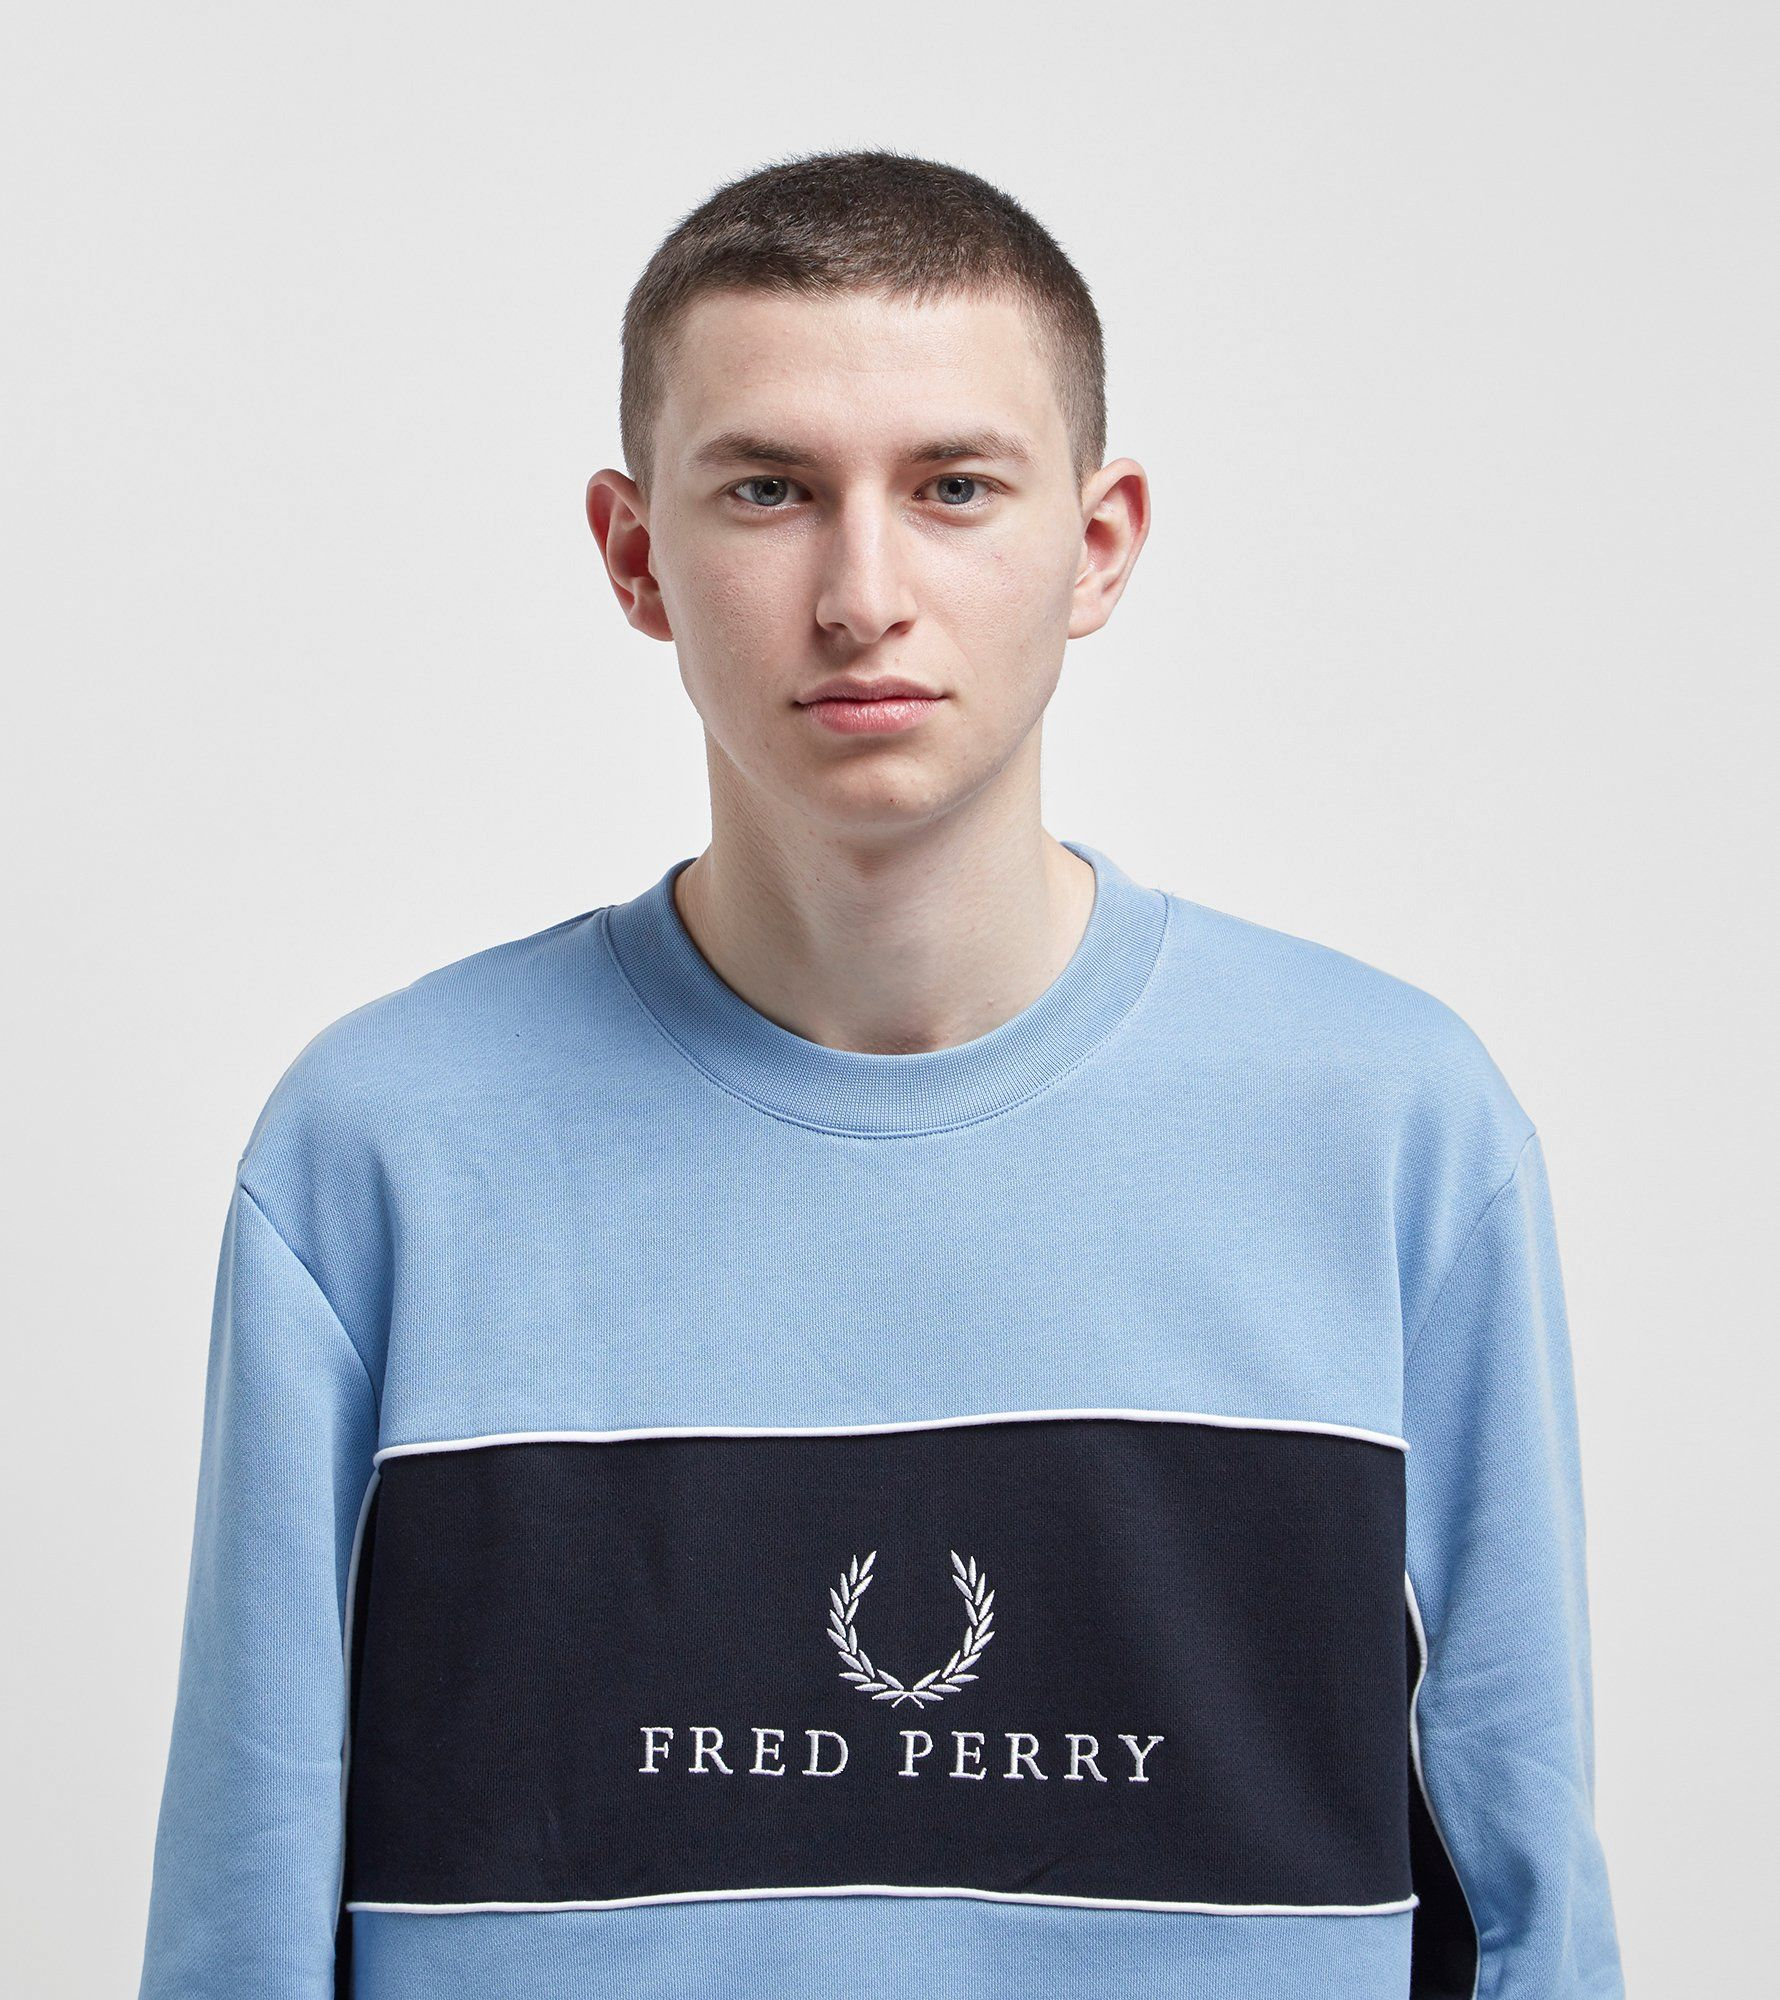 Fred Perry Crew Sweatshirt - size? Exclusive